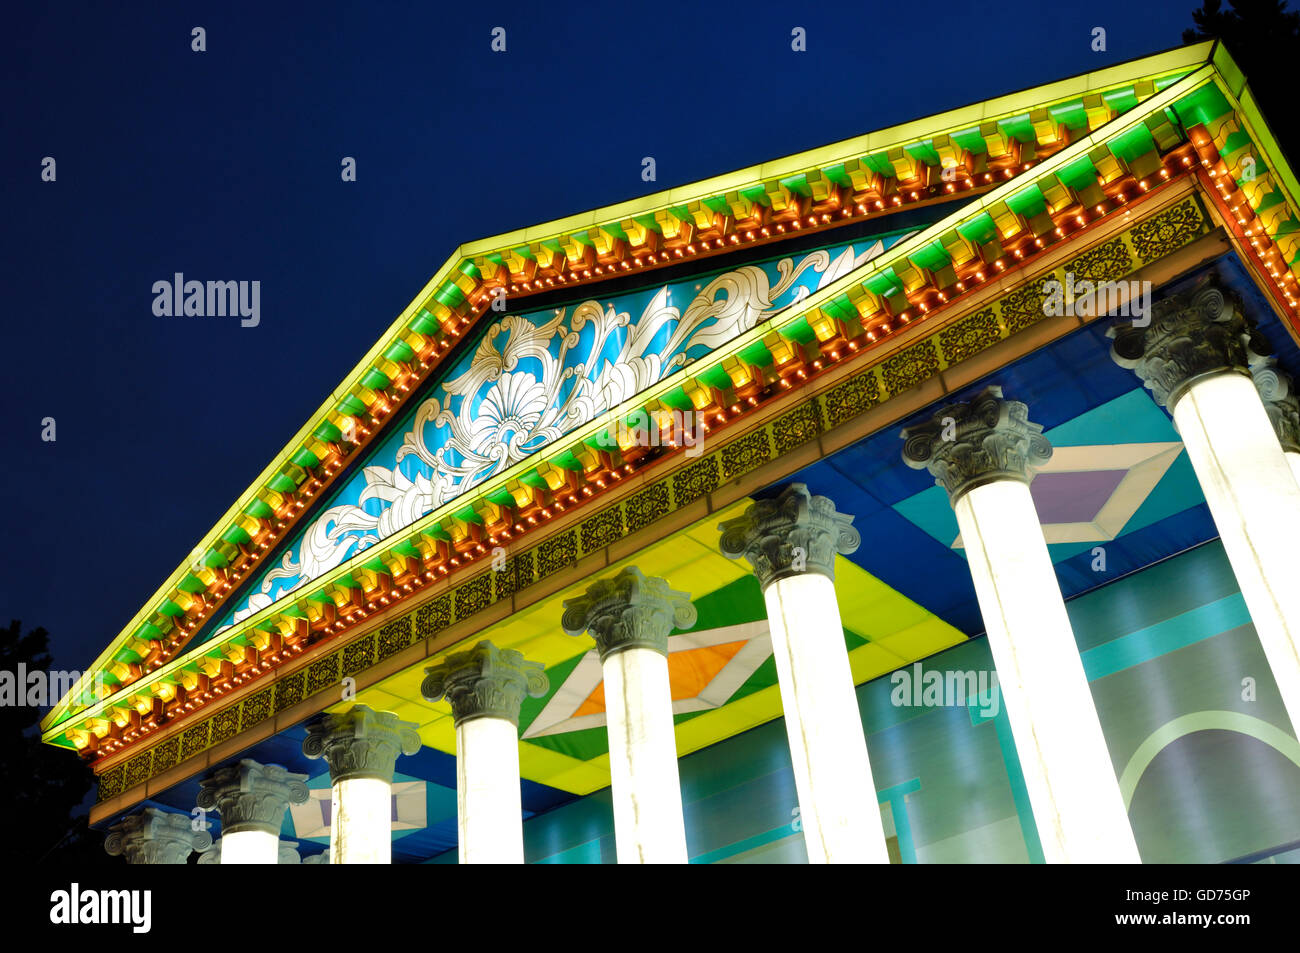 Chinese Lantern Festival, colorful illumination glowing at night, Ontario Place, Toronto, Ontario, Canada - Stock Image